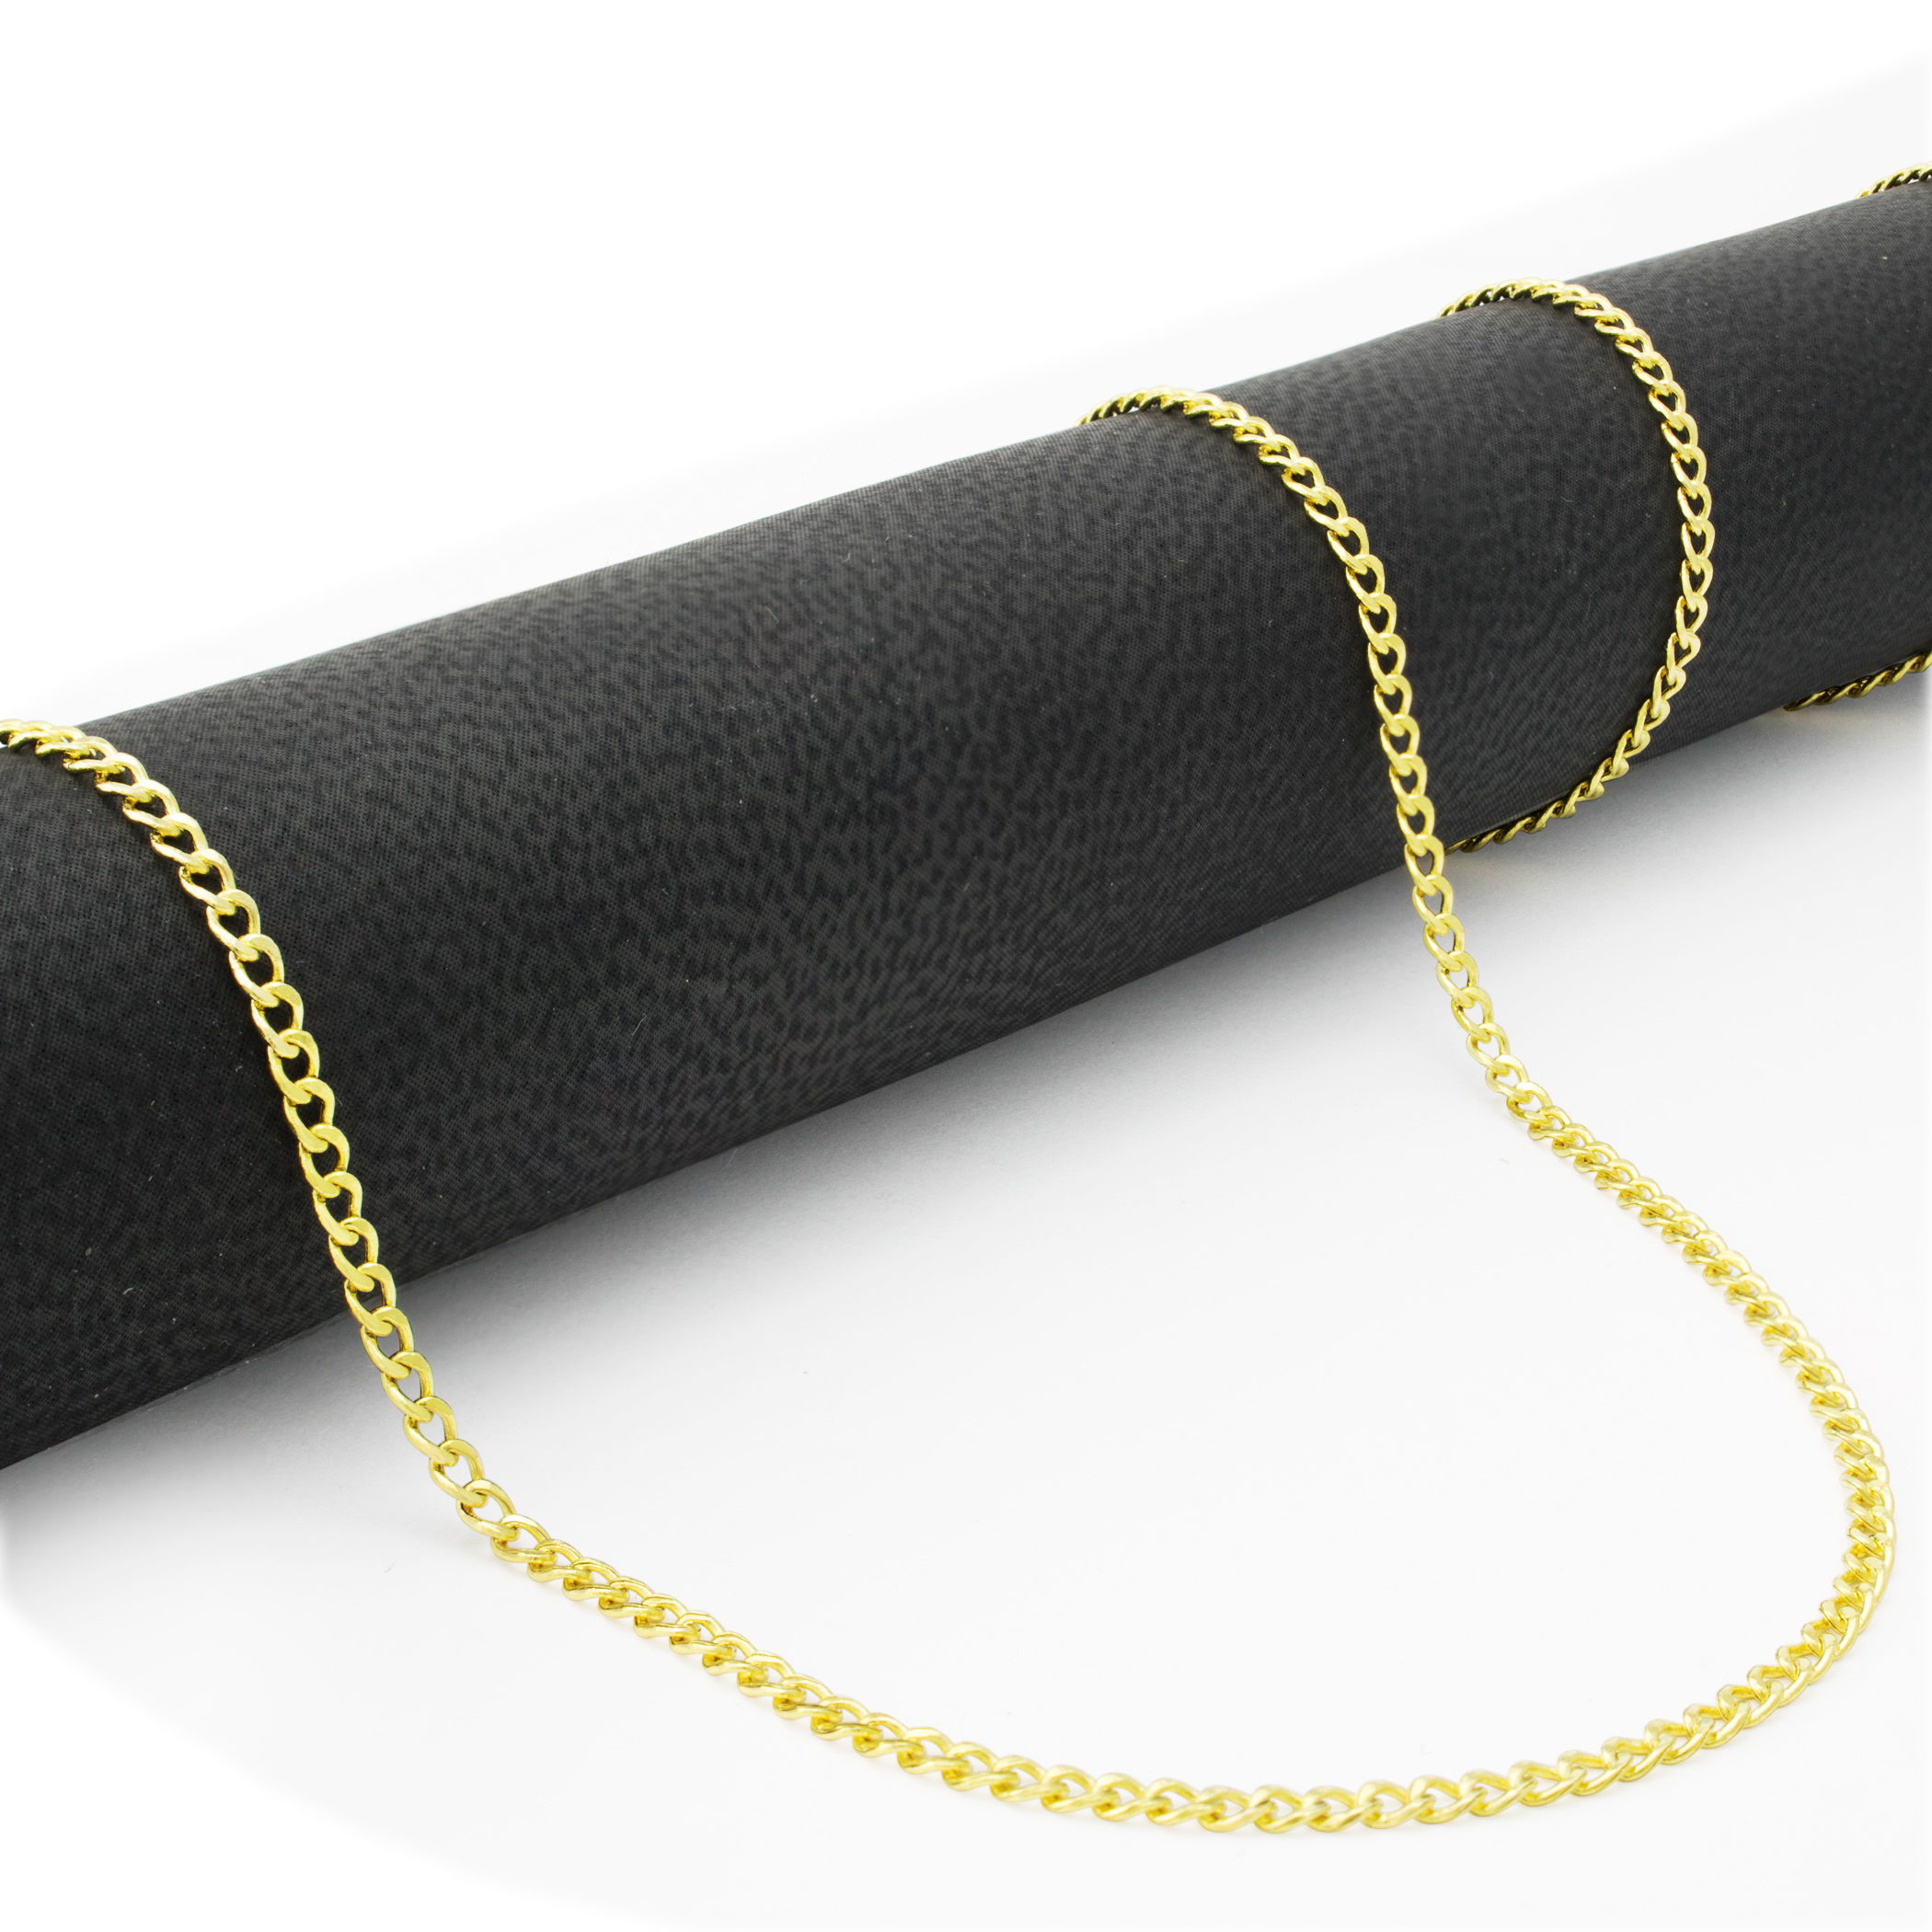 10K-Yellow-Gold-2mm-11mm-Cuban-Curb-Chain-Pendant-Necklace-Men-Women-16-034-30-034 thumbnail 10